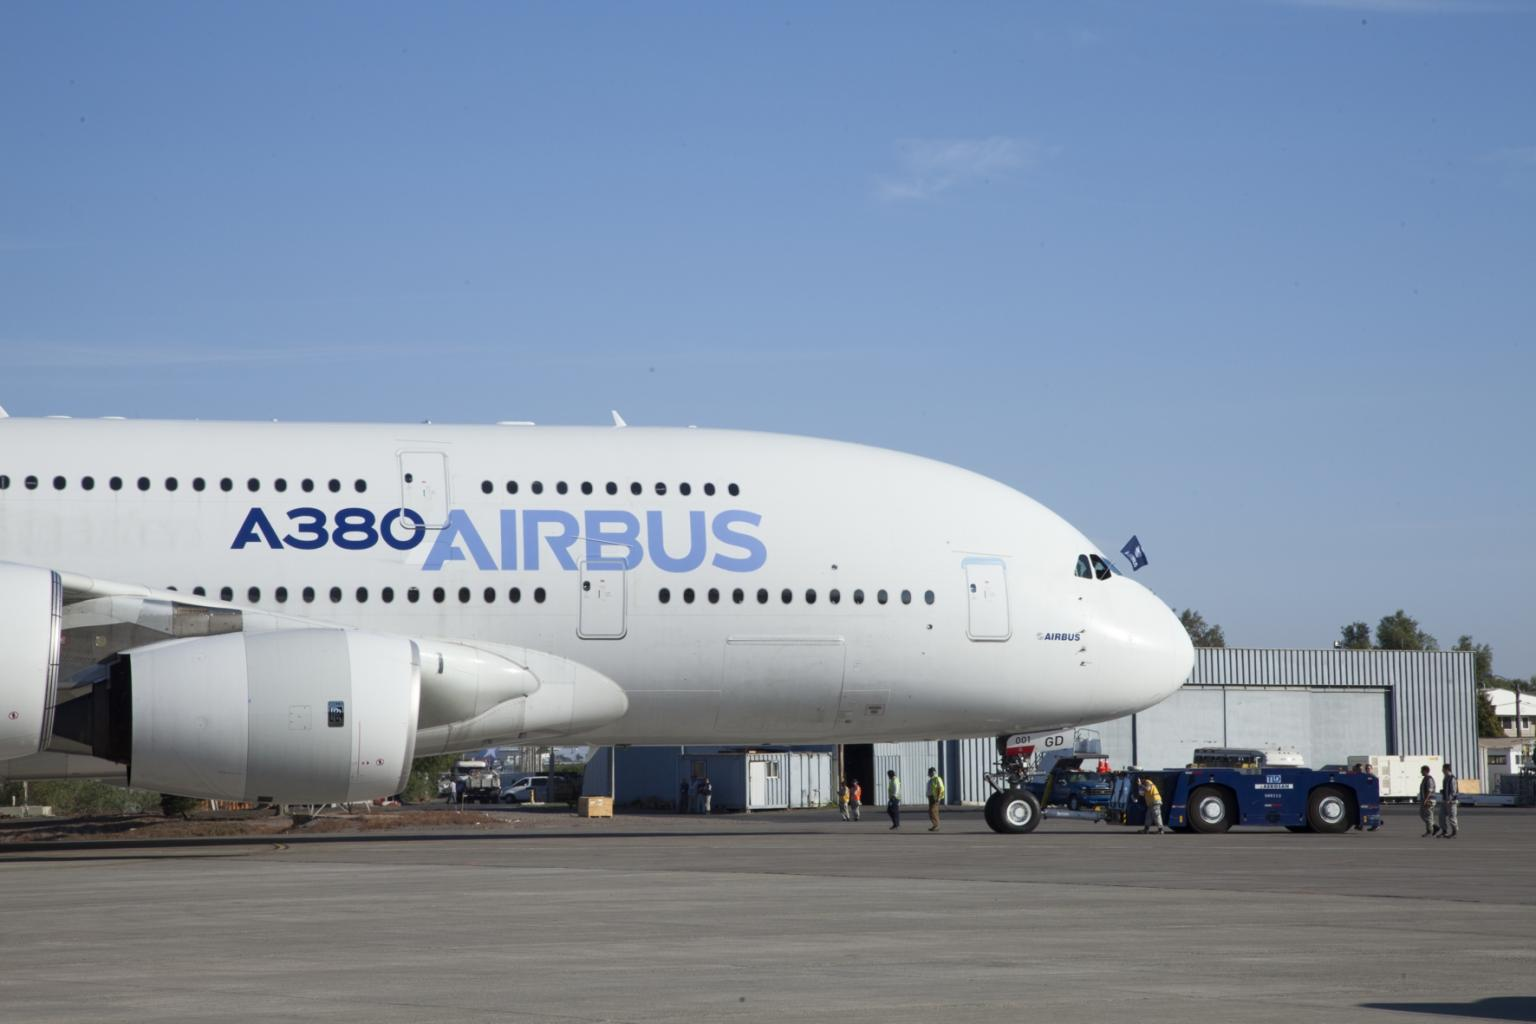 The Airbus A380 is the largest passenger aeroplane currently in series production. Its doors are large and too heavy for manual closing (Image courtesy of Airbus)